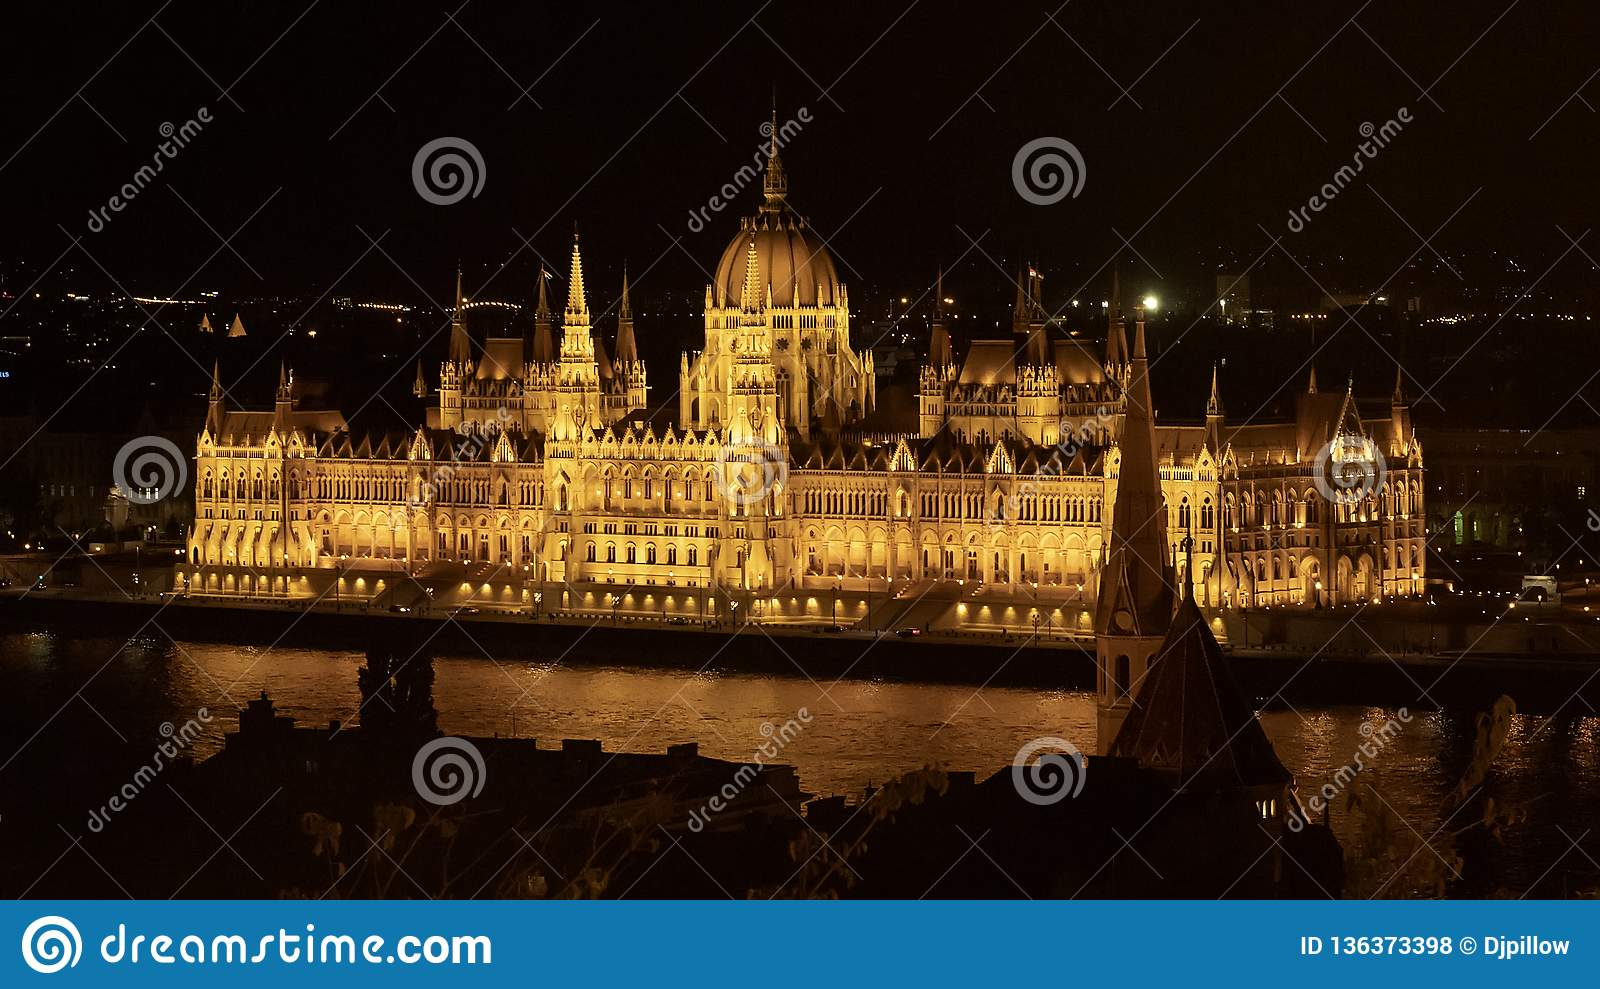 The Hungarian Parliament Building at night, from the Pest side of the River Danube, Hungary